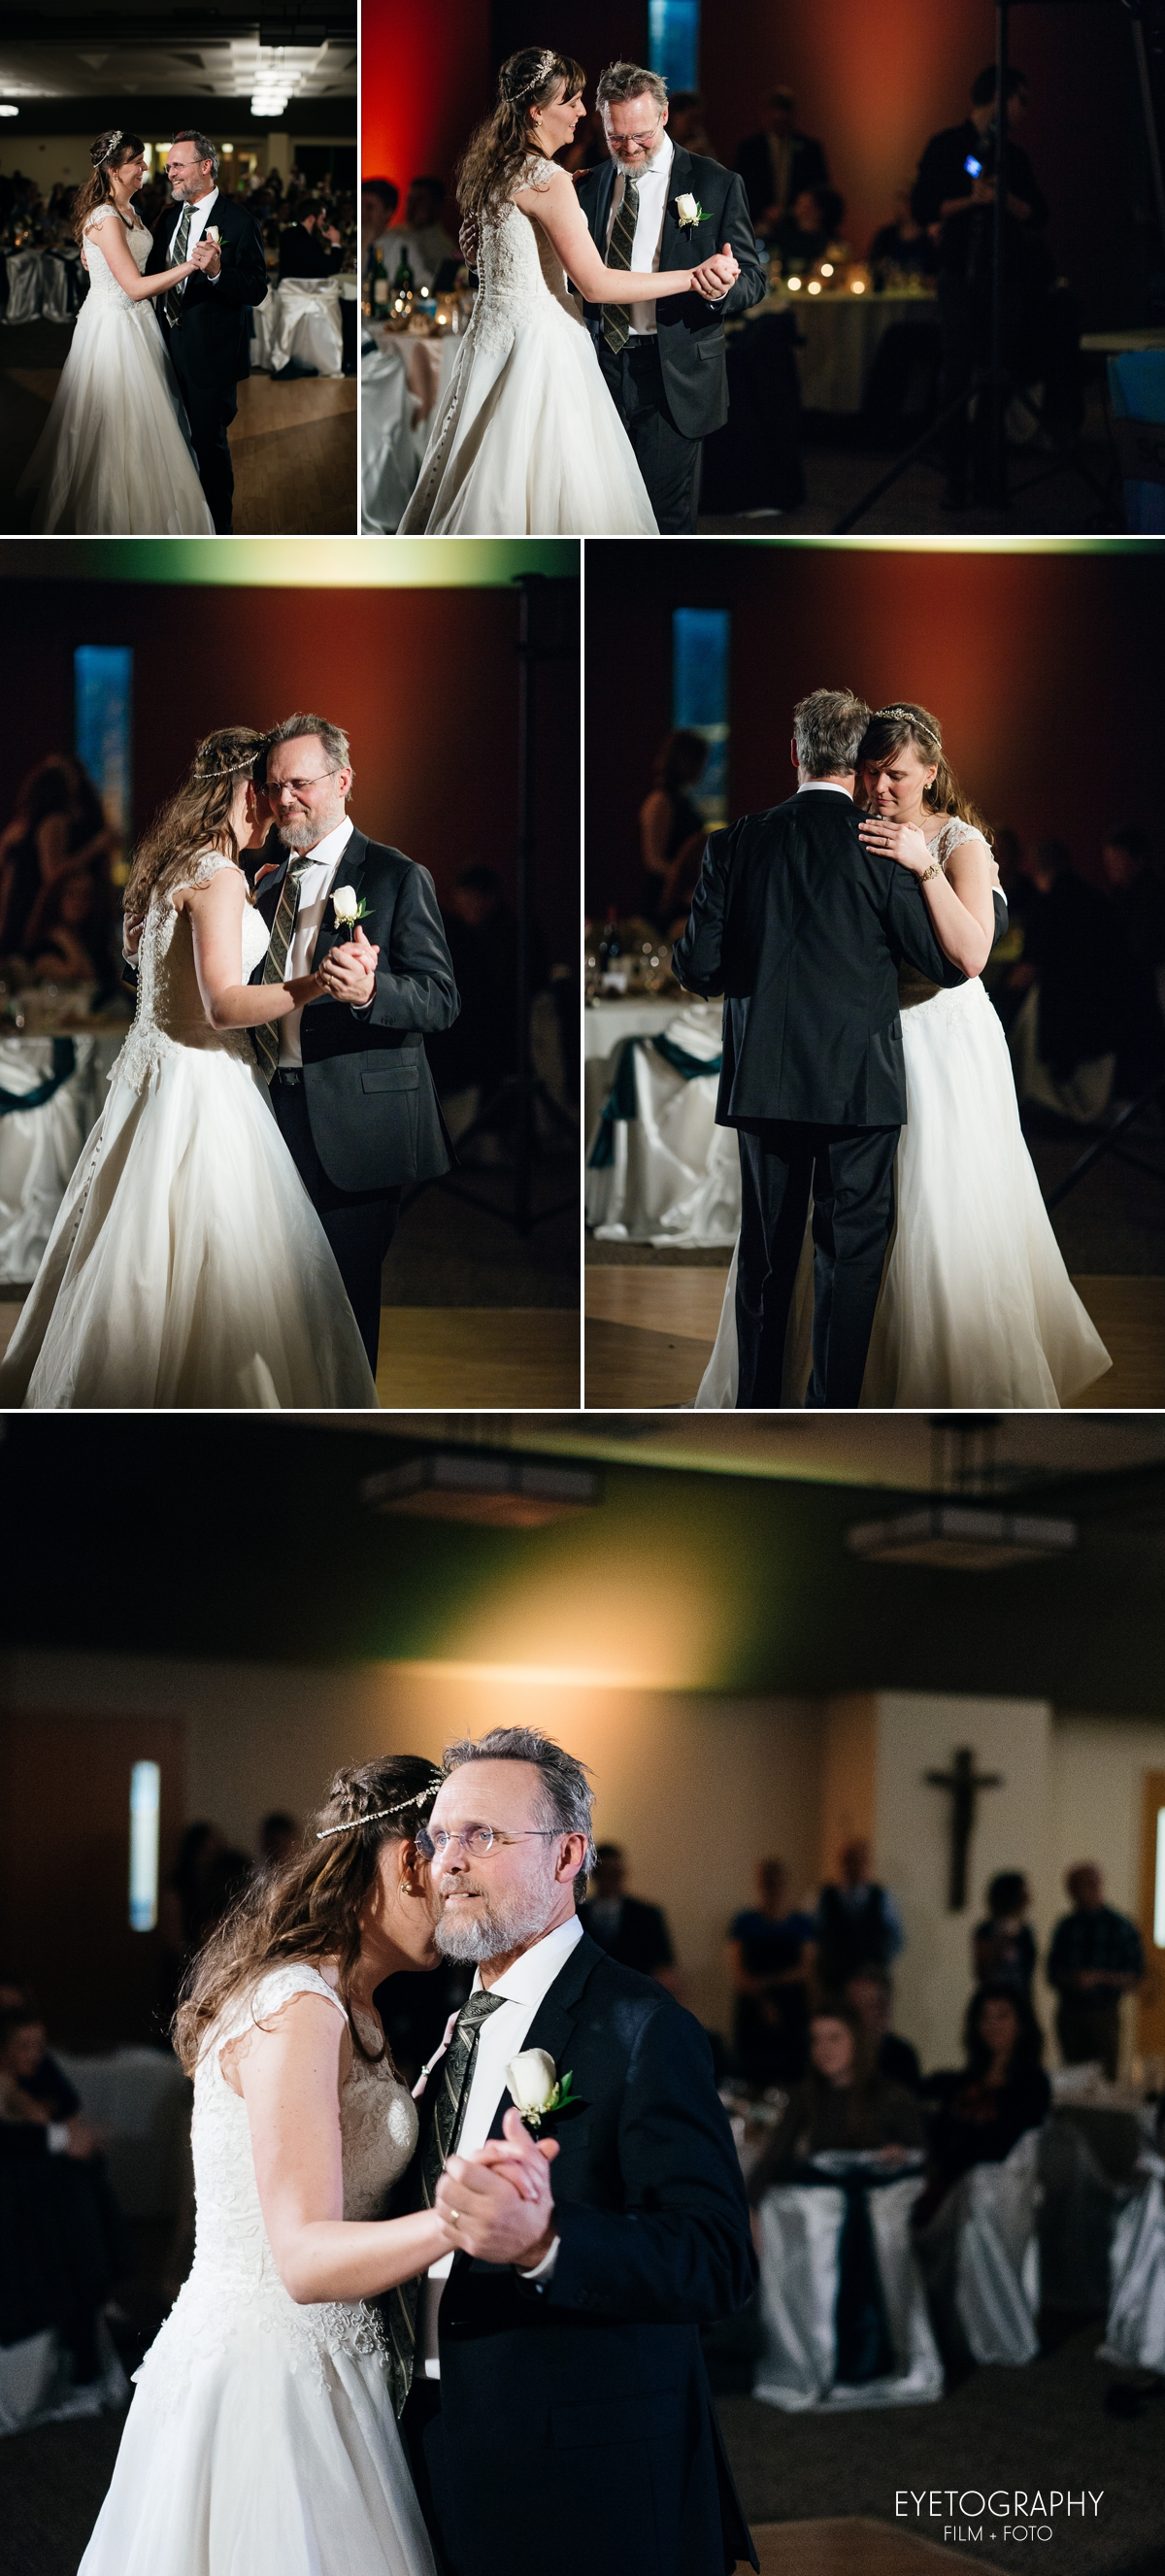 St. Paul Wedding Photography | Luke + Jean | Eyetography Film + Foto 20